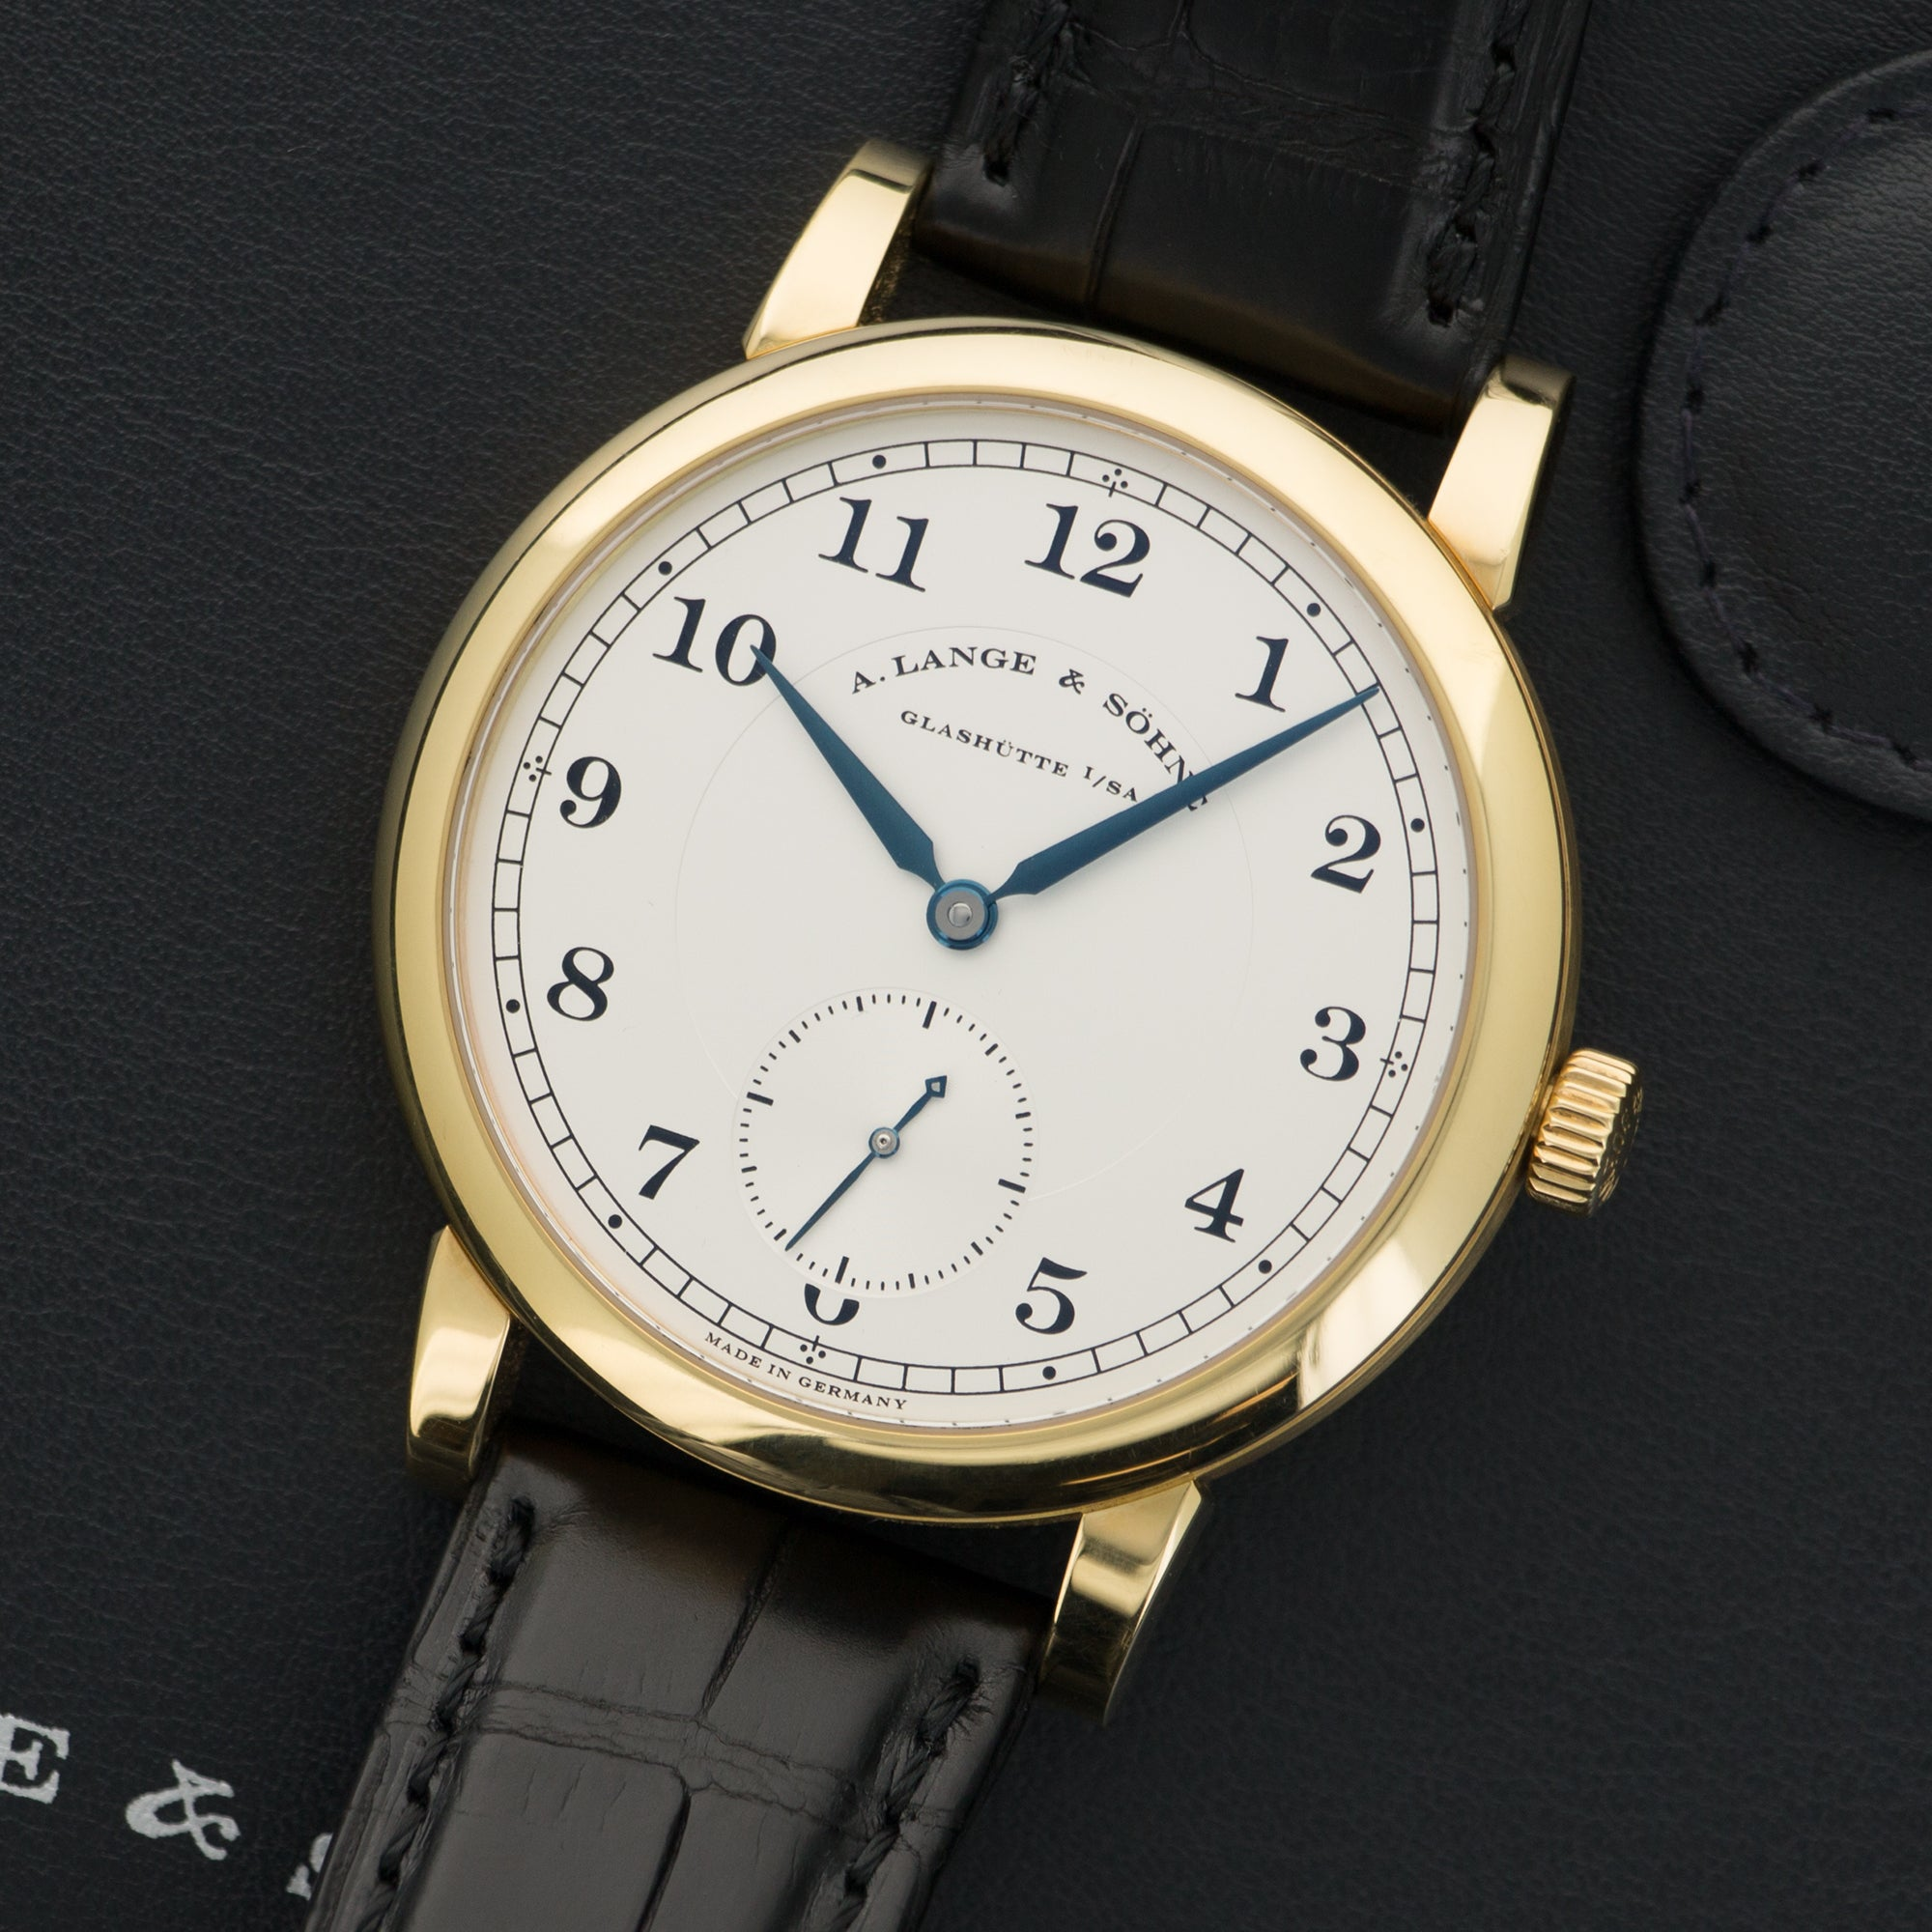 A. Lange & Sohne 1815 233.021 18k YG  Likely Never Polished, Original Finish Gents 18k YG Silver with Arabic Numerals 40mm Manual 2010- Black Crocodile Strap Original Box and Instruction Booklets